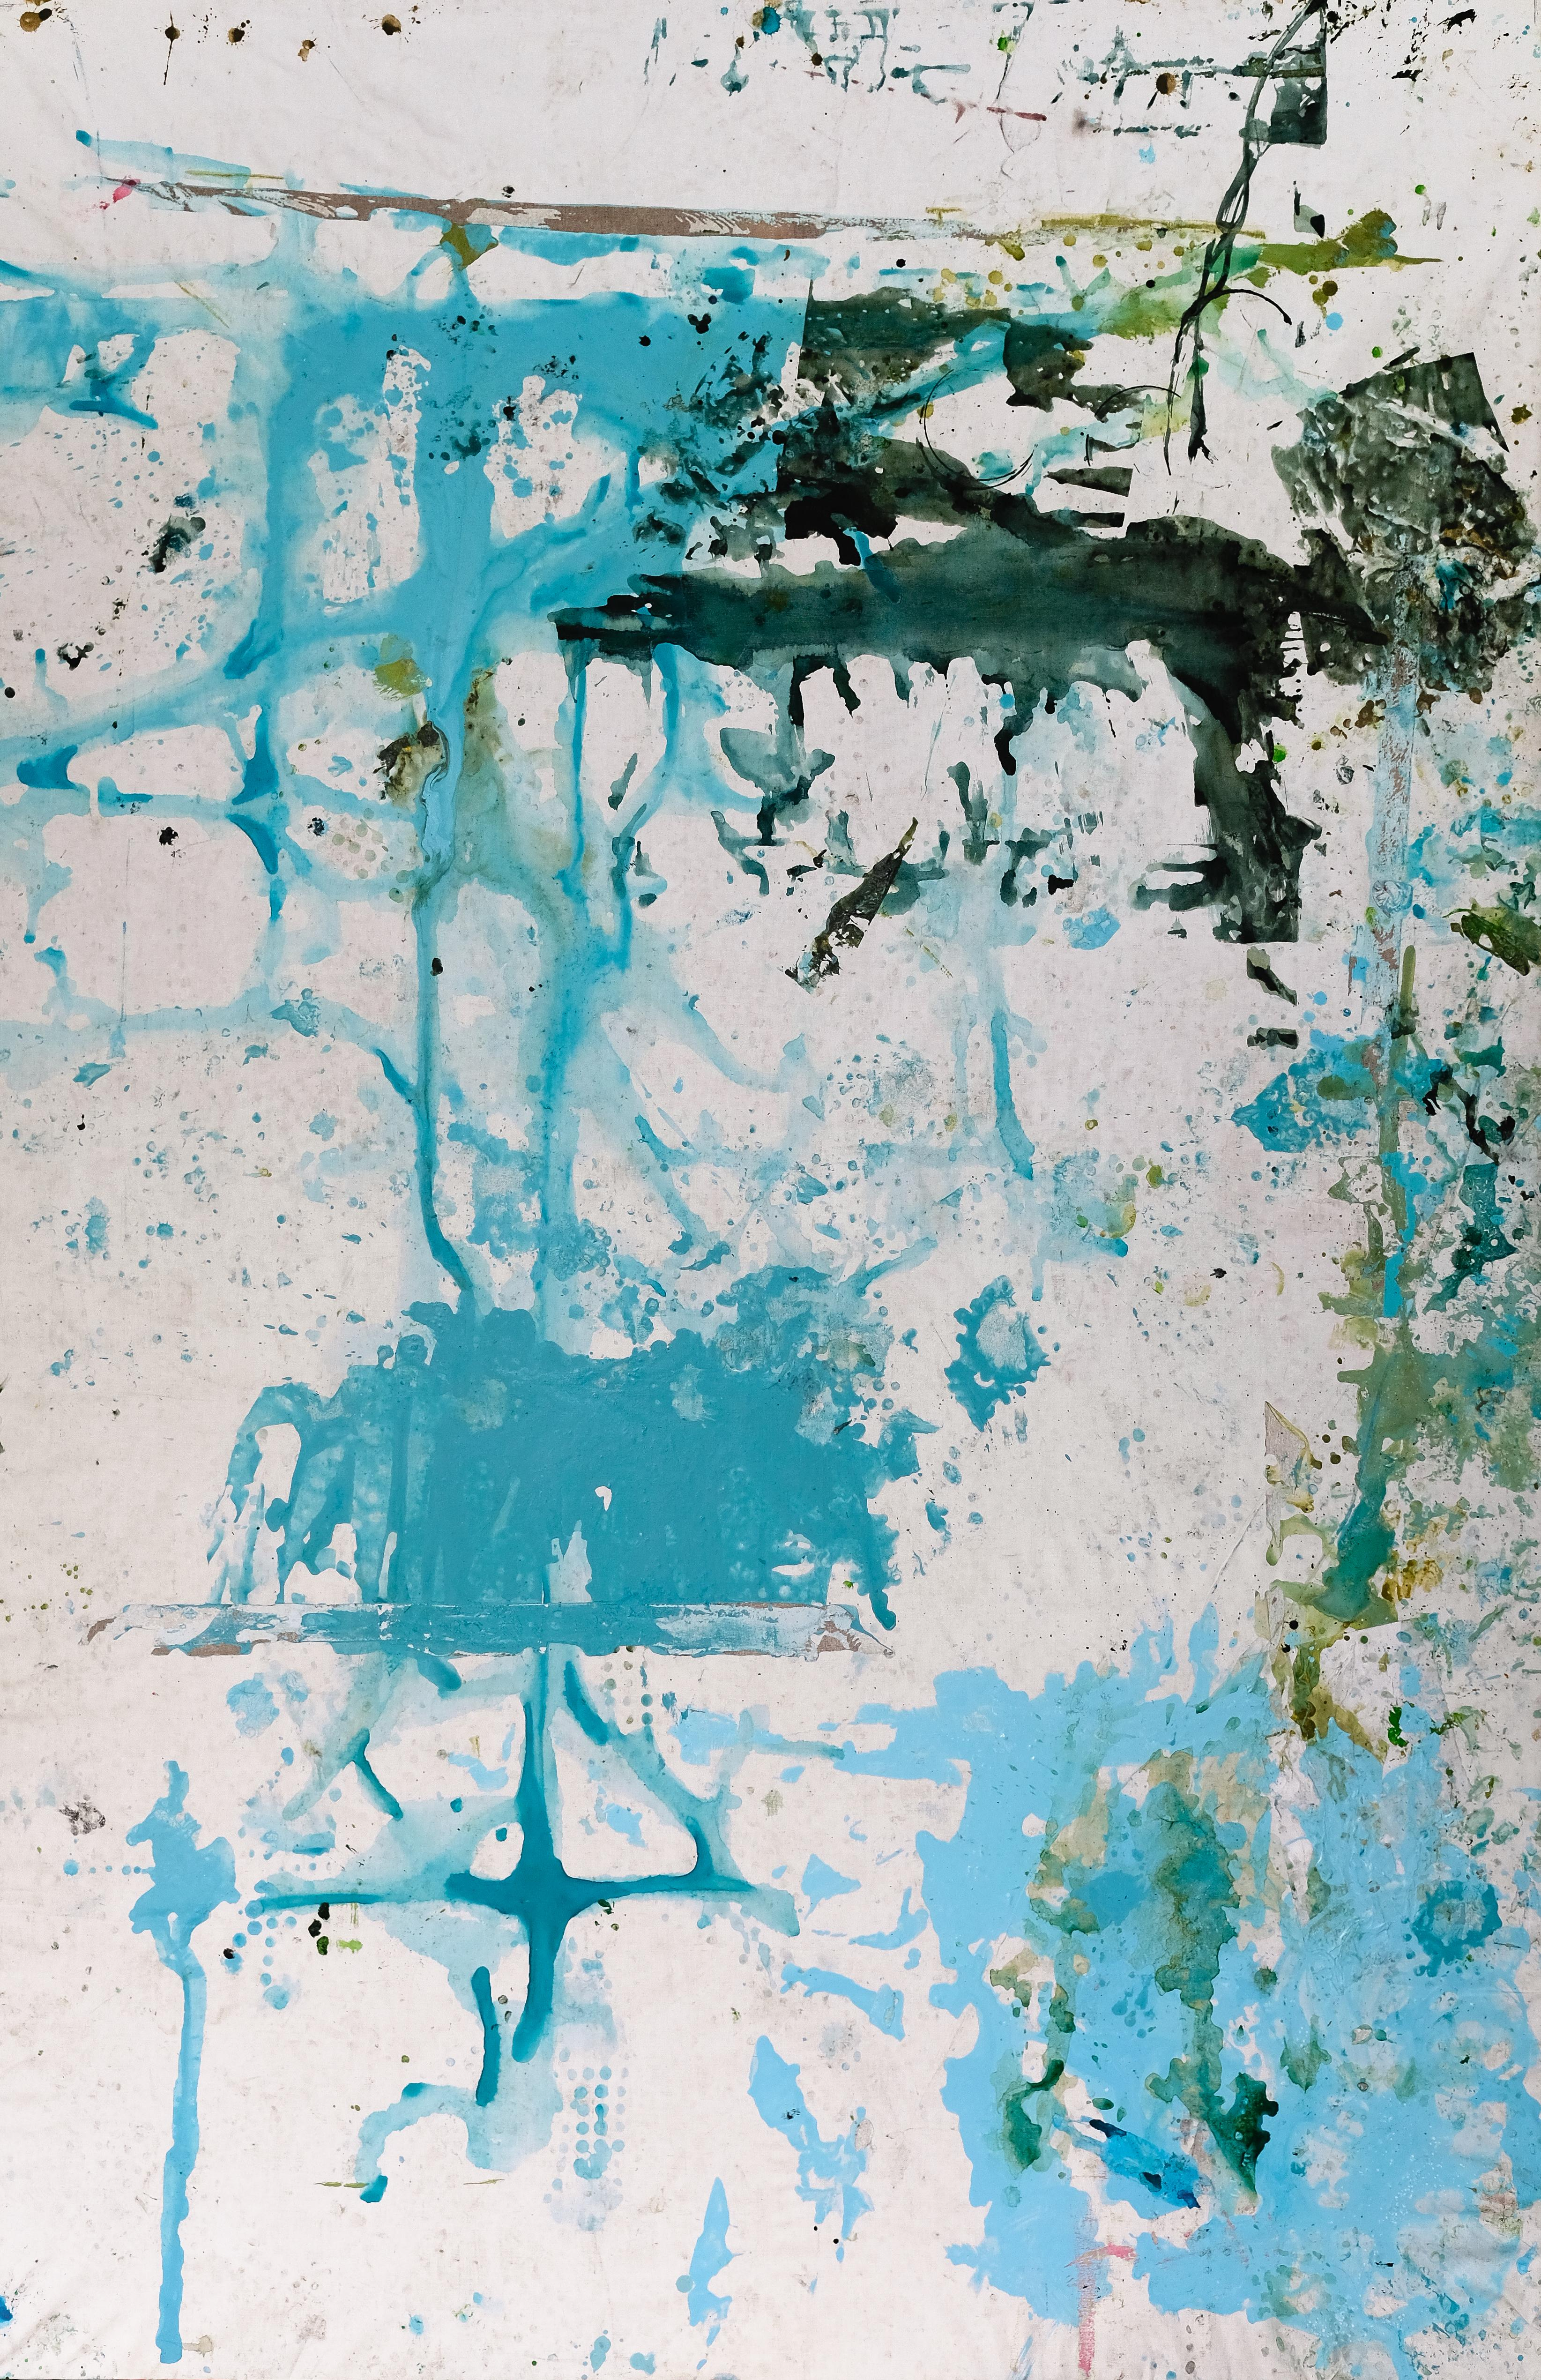 Botanical Garden, Traces - Large Format, Contemporary Abstract Natur Painting